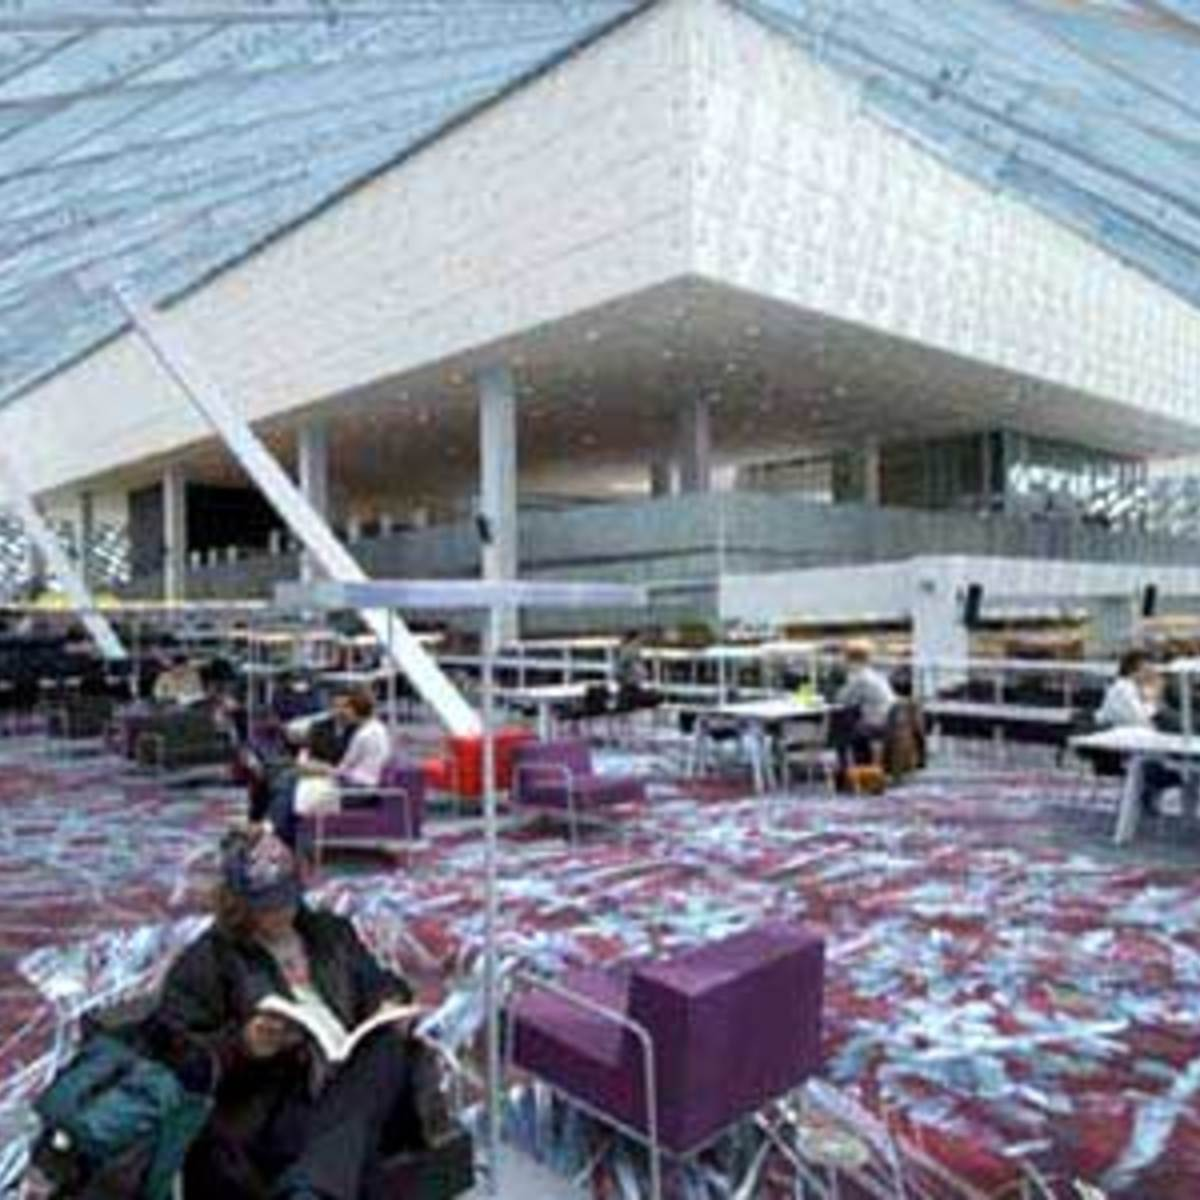 Seattle Public Library Rem Koolhaas Oma Floornature